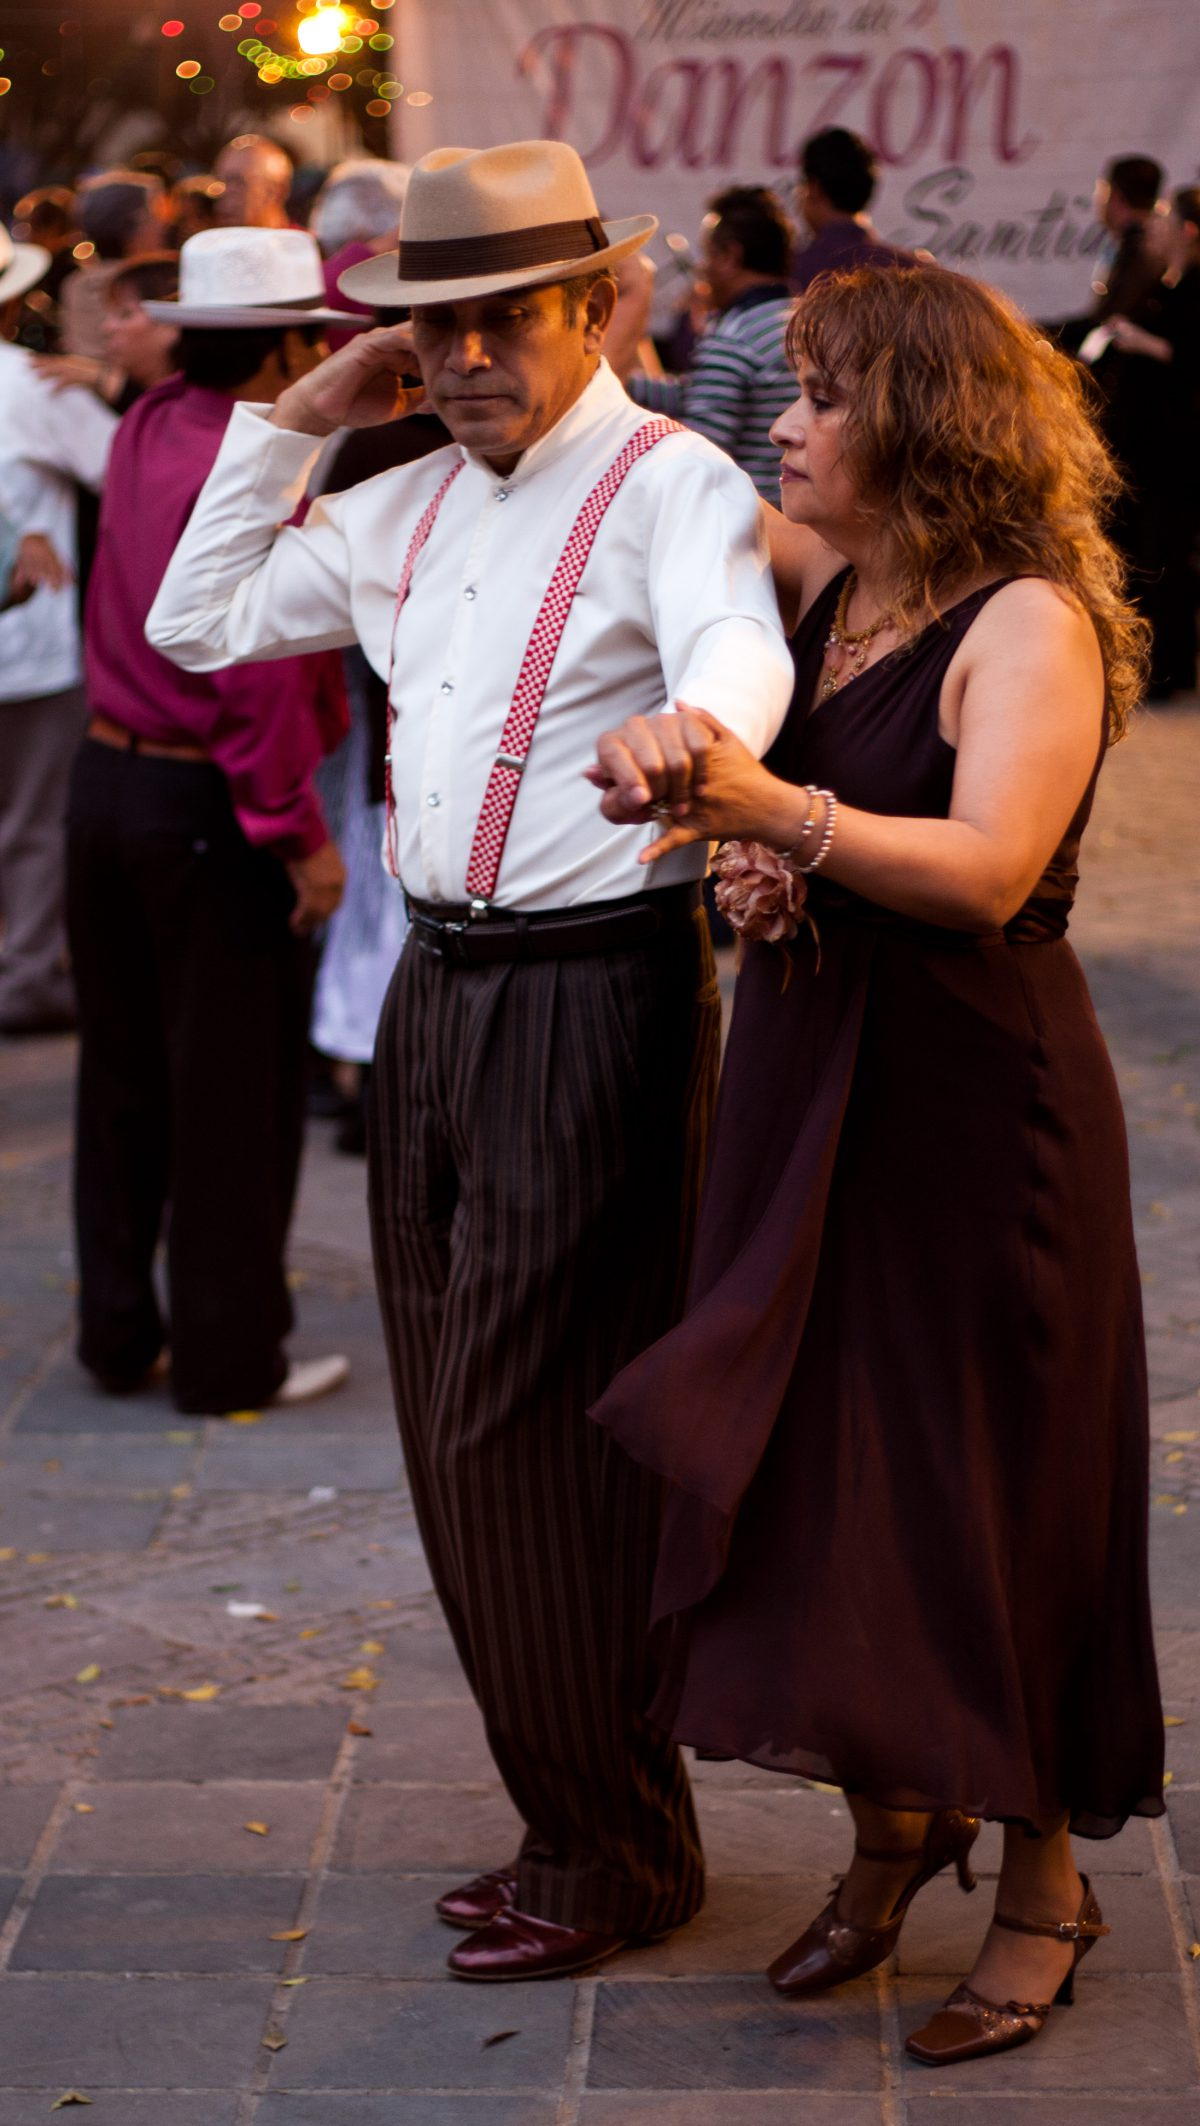 Dancing - at Oaxaca Zocalo square, male, female, dance